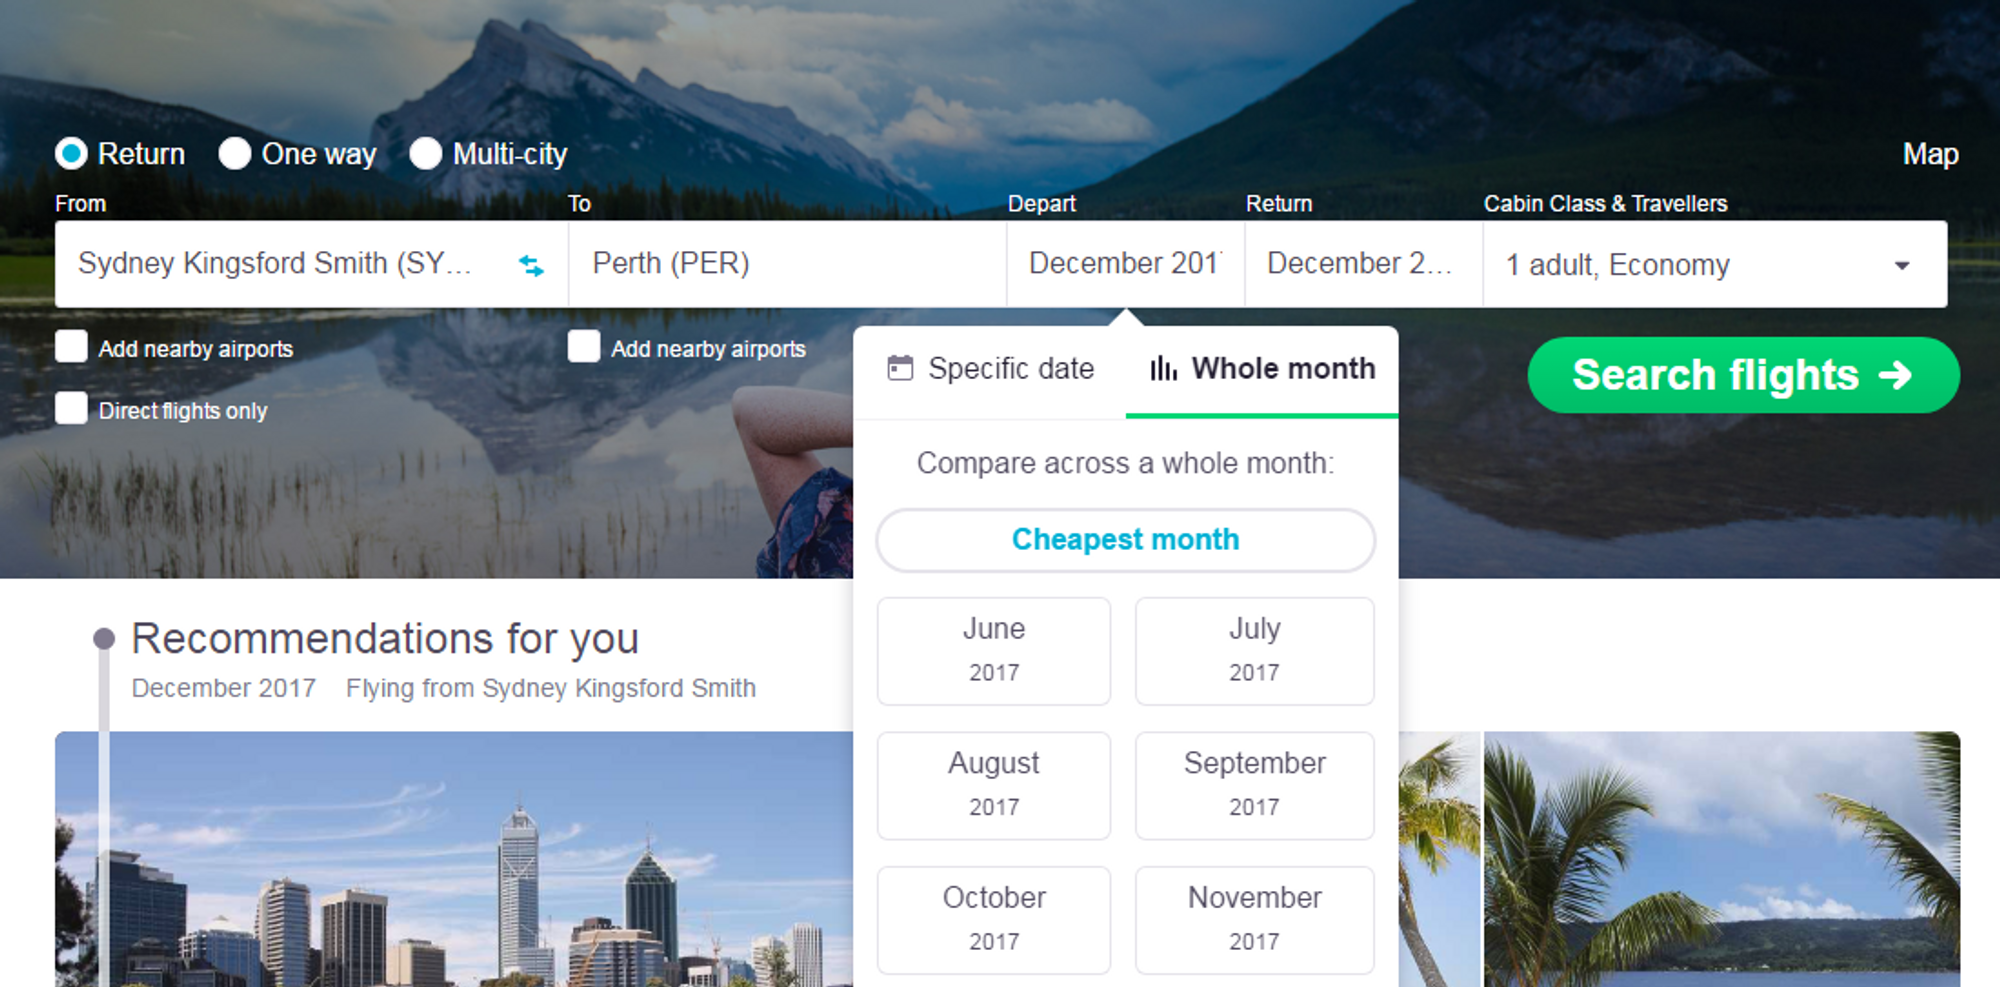 Image showing the Whole Month Search option